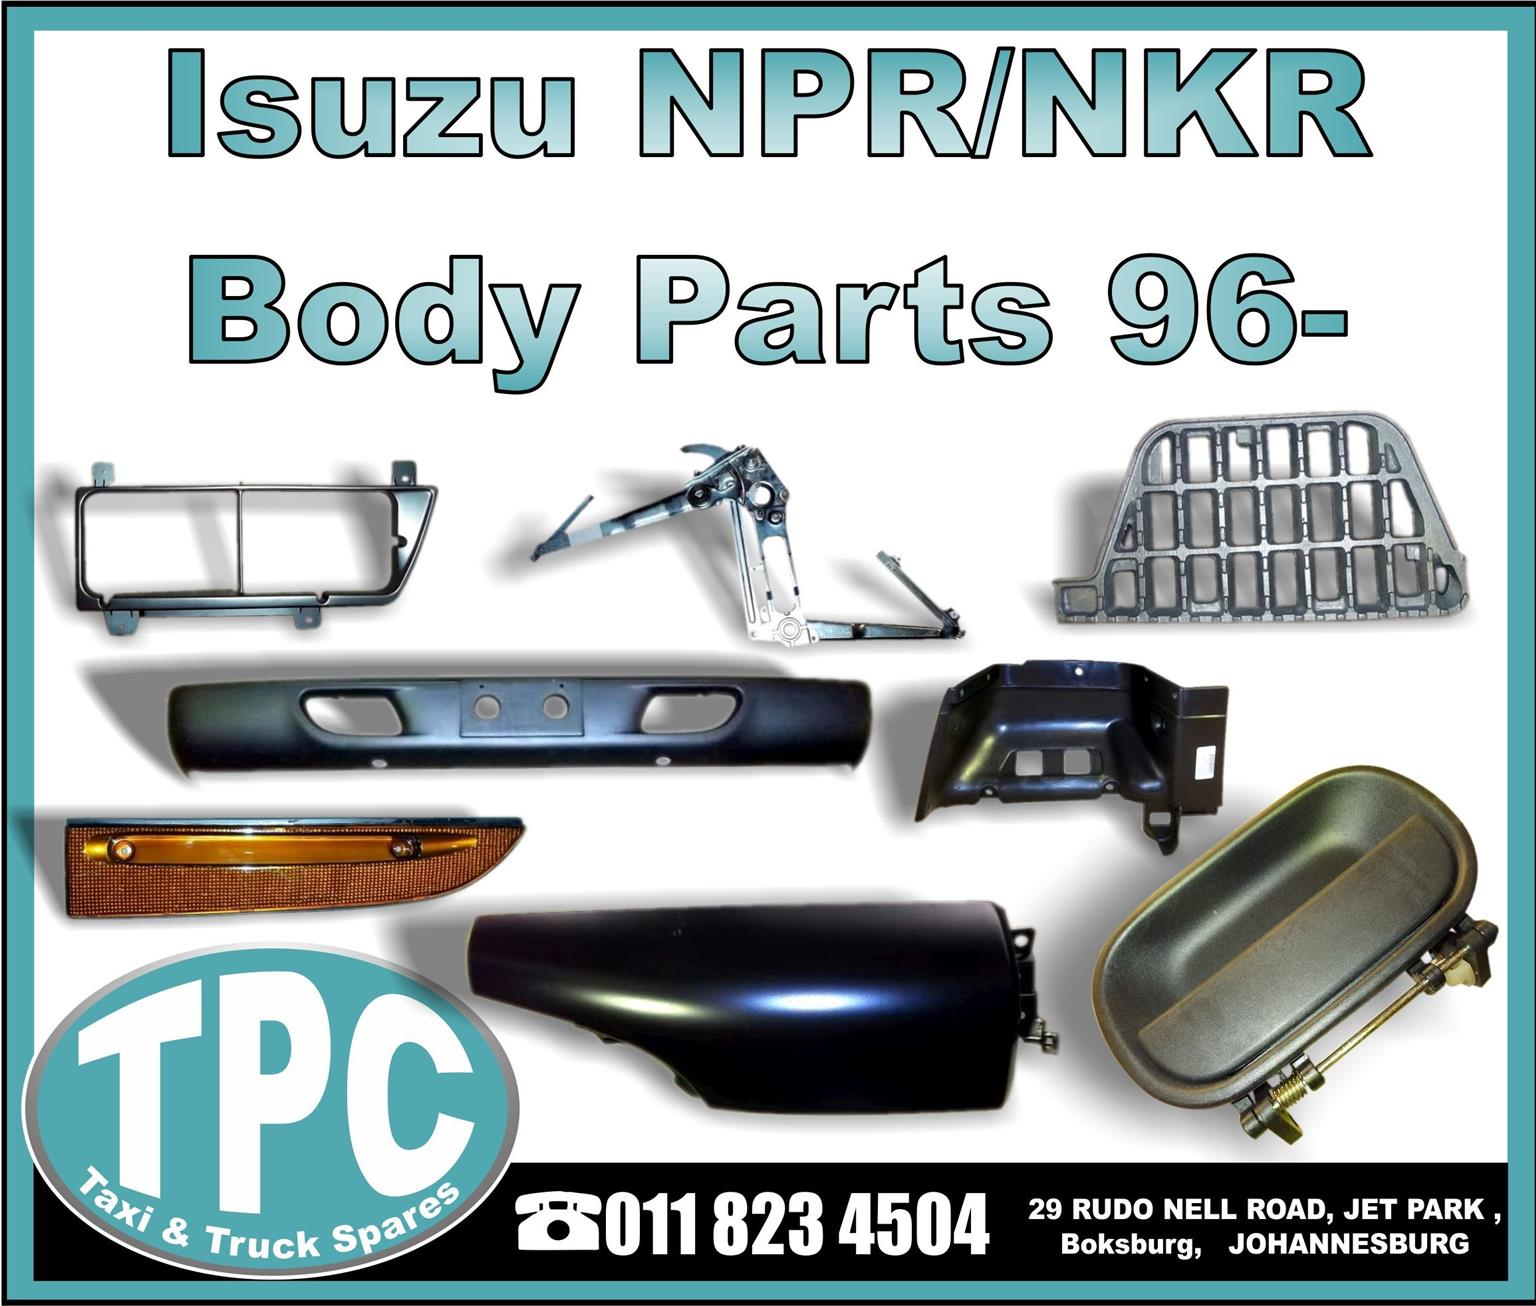 Isuzu NPR/NKR 96- Body Parts - New Replacement Parts